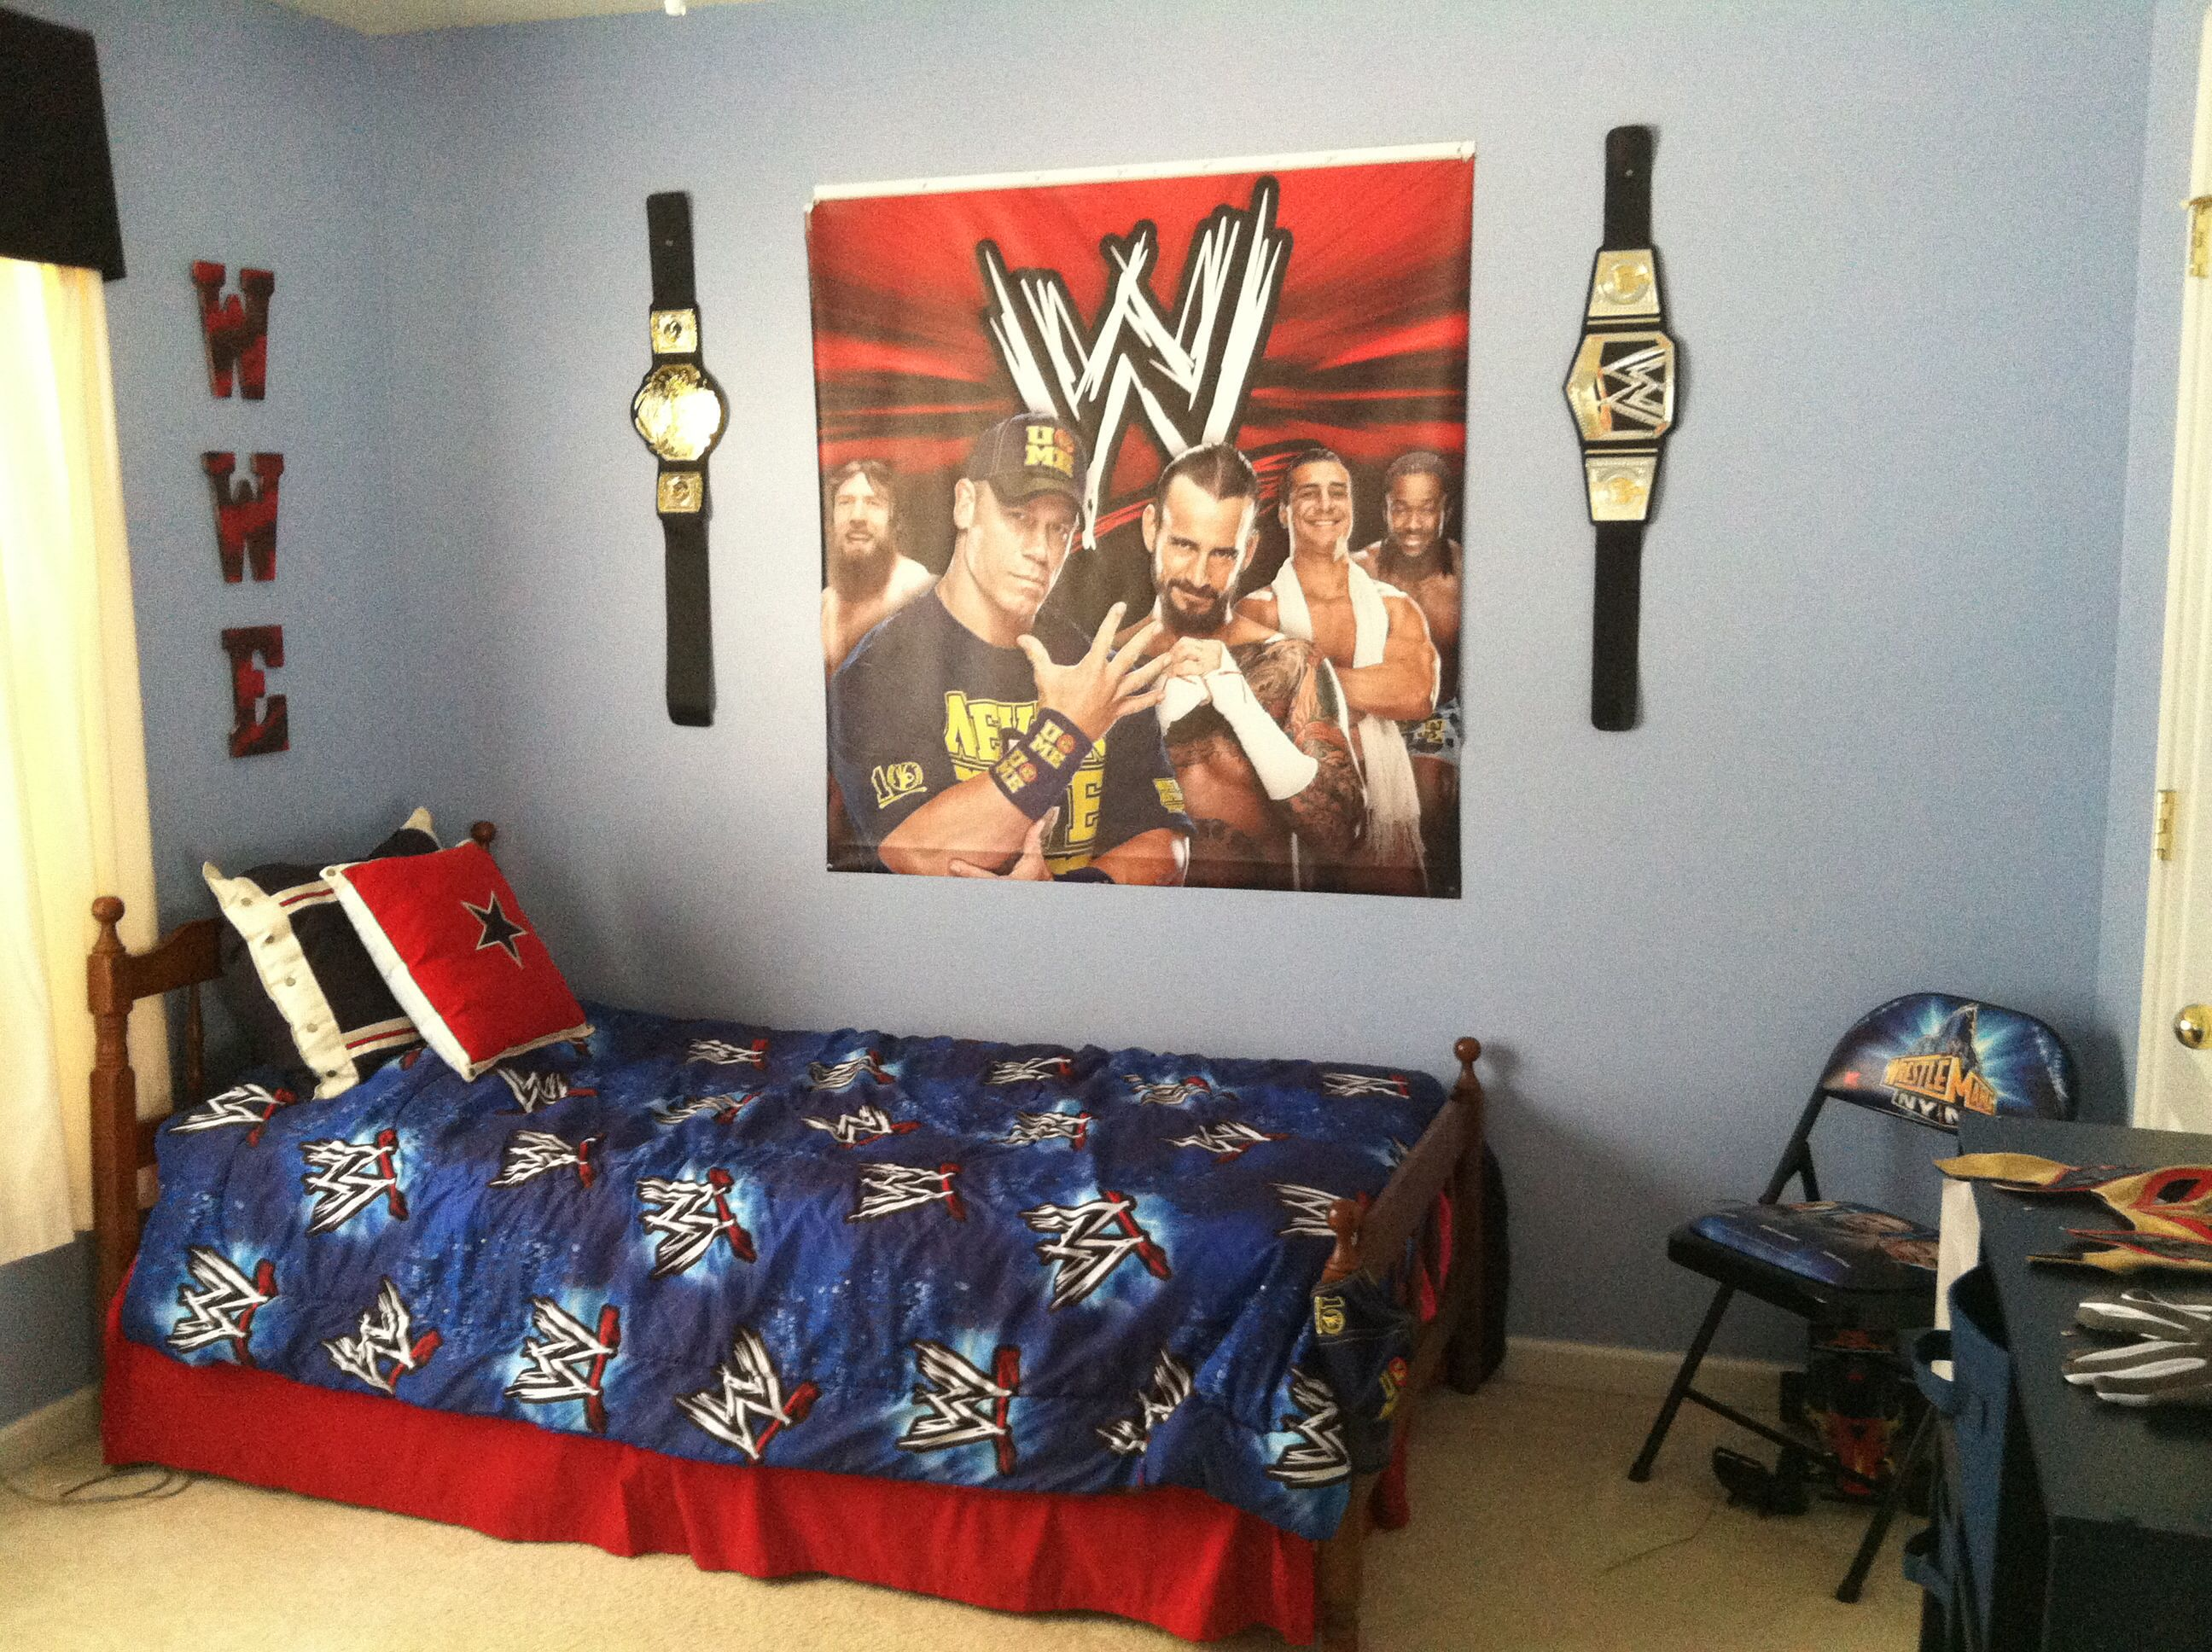 Evan S Wwe Bedroom Wwe Wrestling Johncena More Pics Of